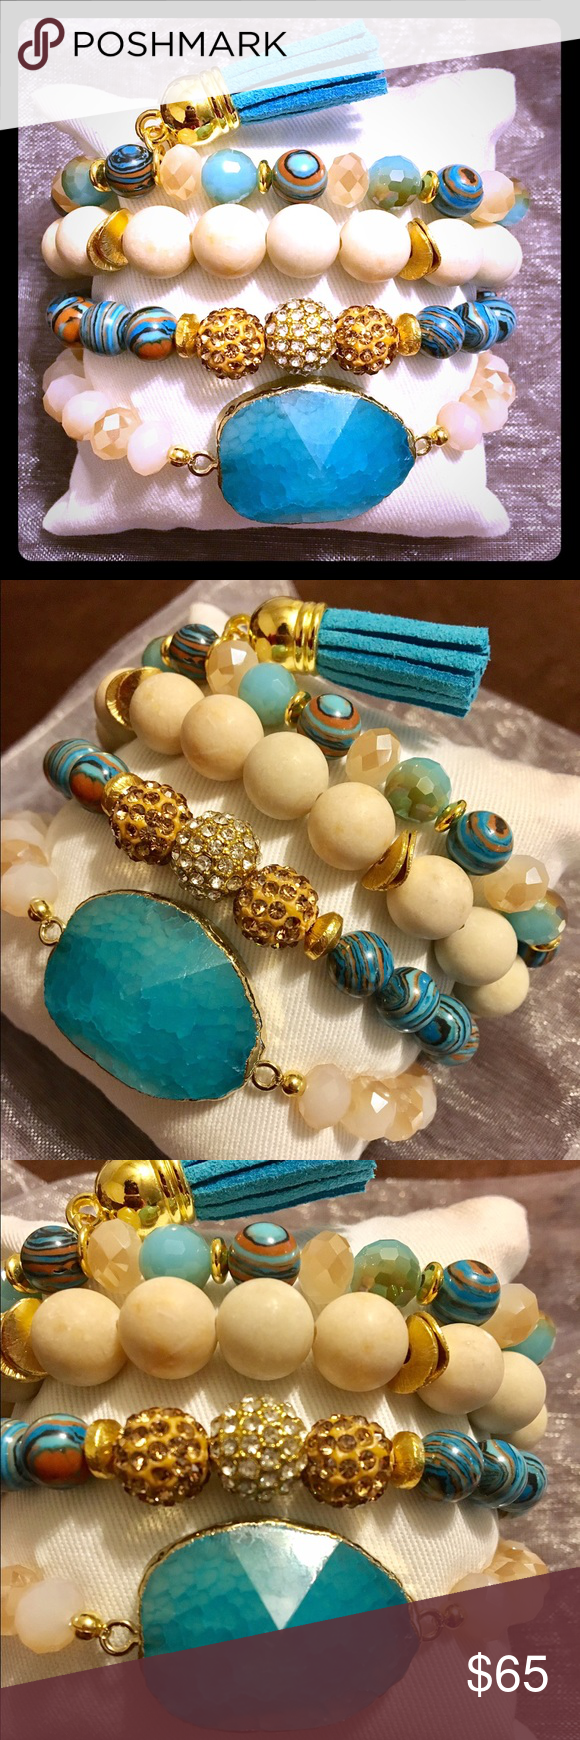 Turquoise Agate Stone Stacked Bracelet Set GORGEOUSLY handcrafted bracelet set that includes an turquoise colored agate center stone beaded bracelet, stacked with 2 accented beaded bracelets and a tassel bracelet finish .... complete with a display pillow perfect for gift giving  . This set also comes in a white organza bag for an optimal fancy finish. A MUST HAVE PIECE!! Jewelry Bracelets